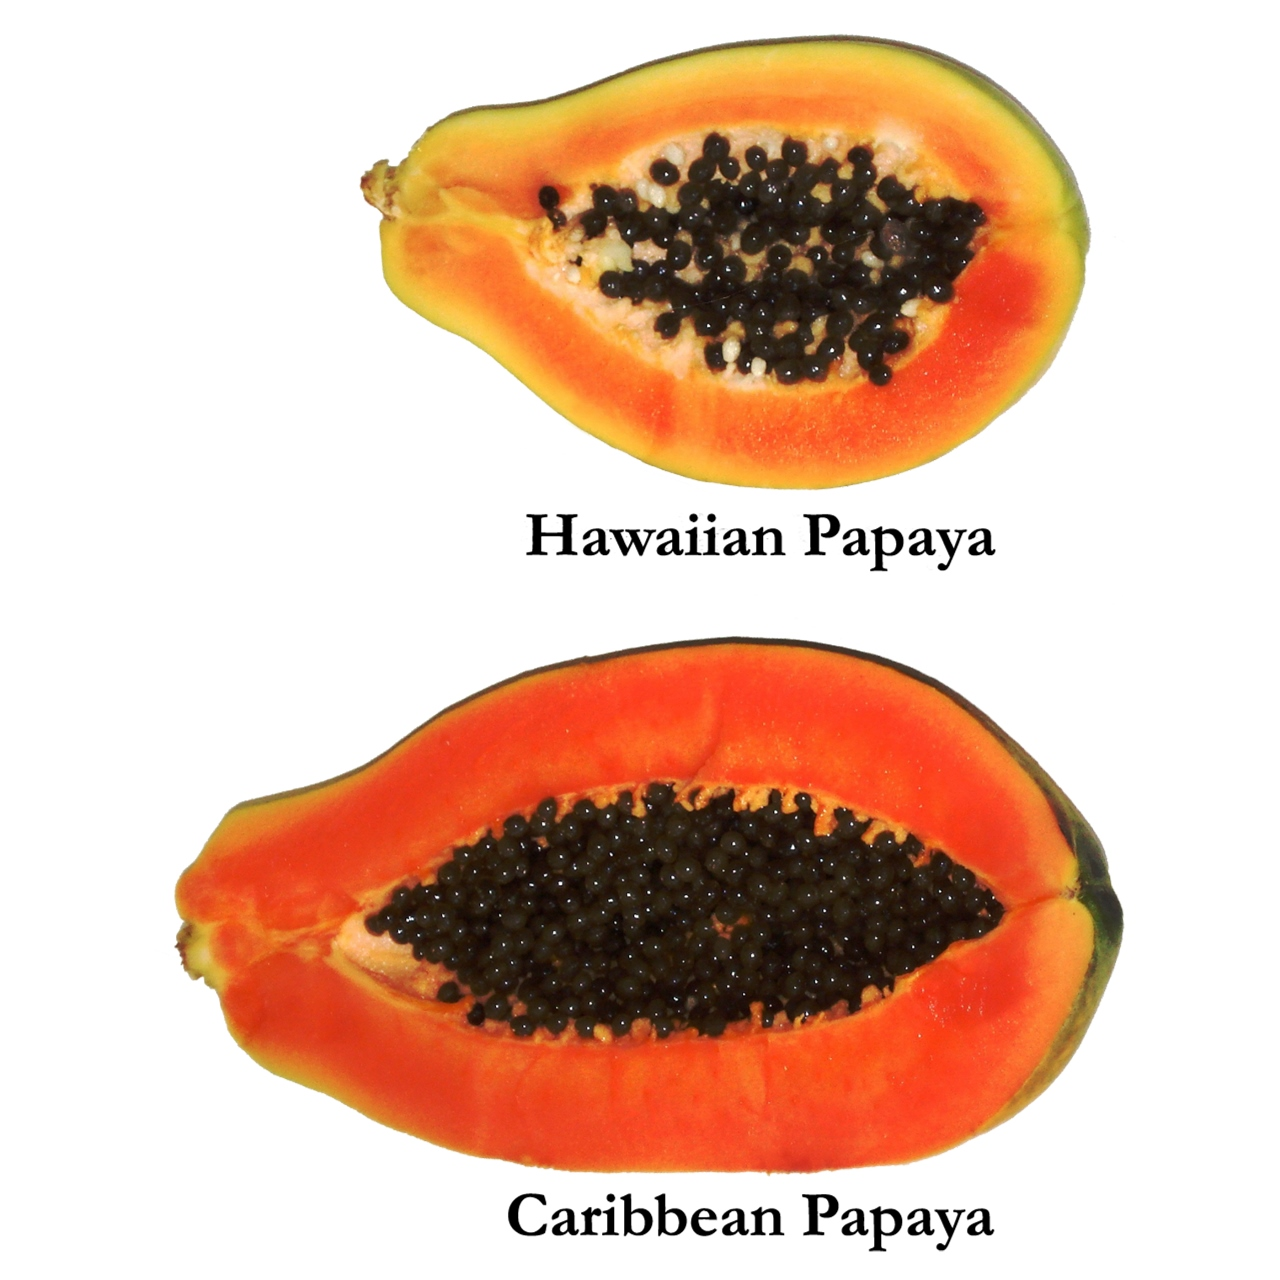 papaya_hawaiian_caribbean.jpg